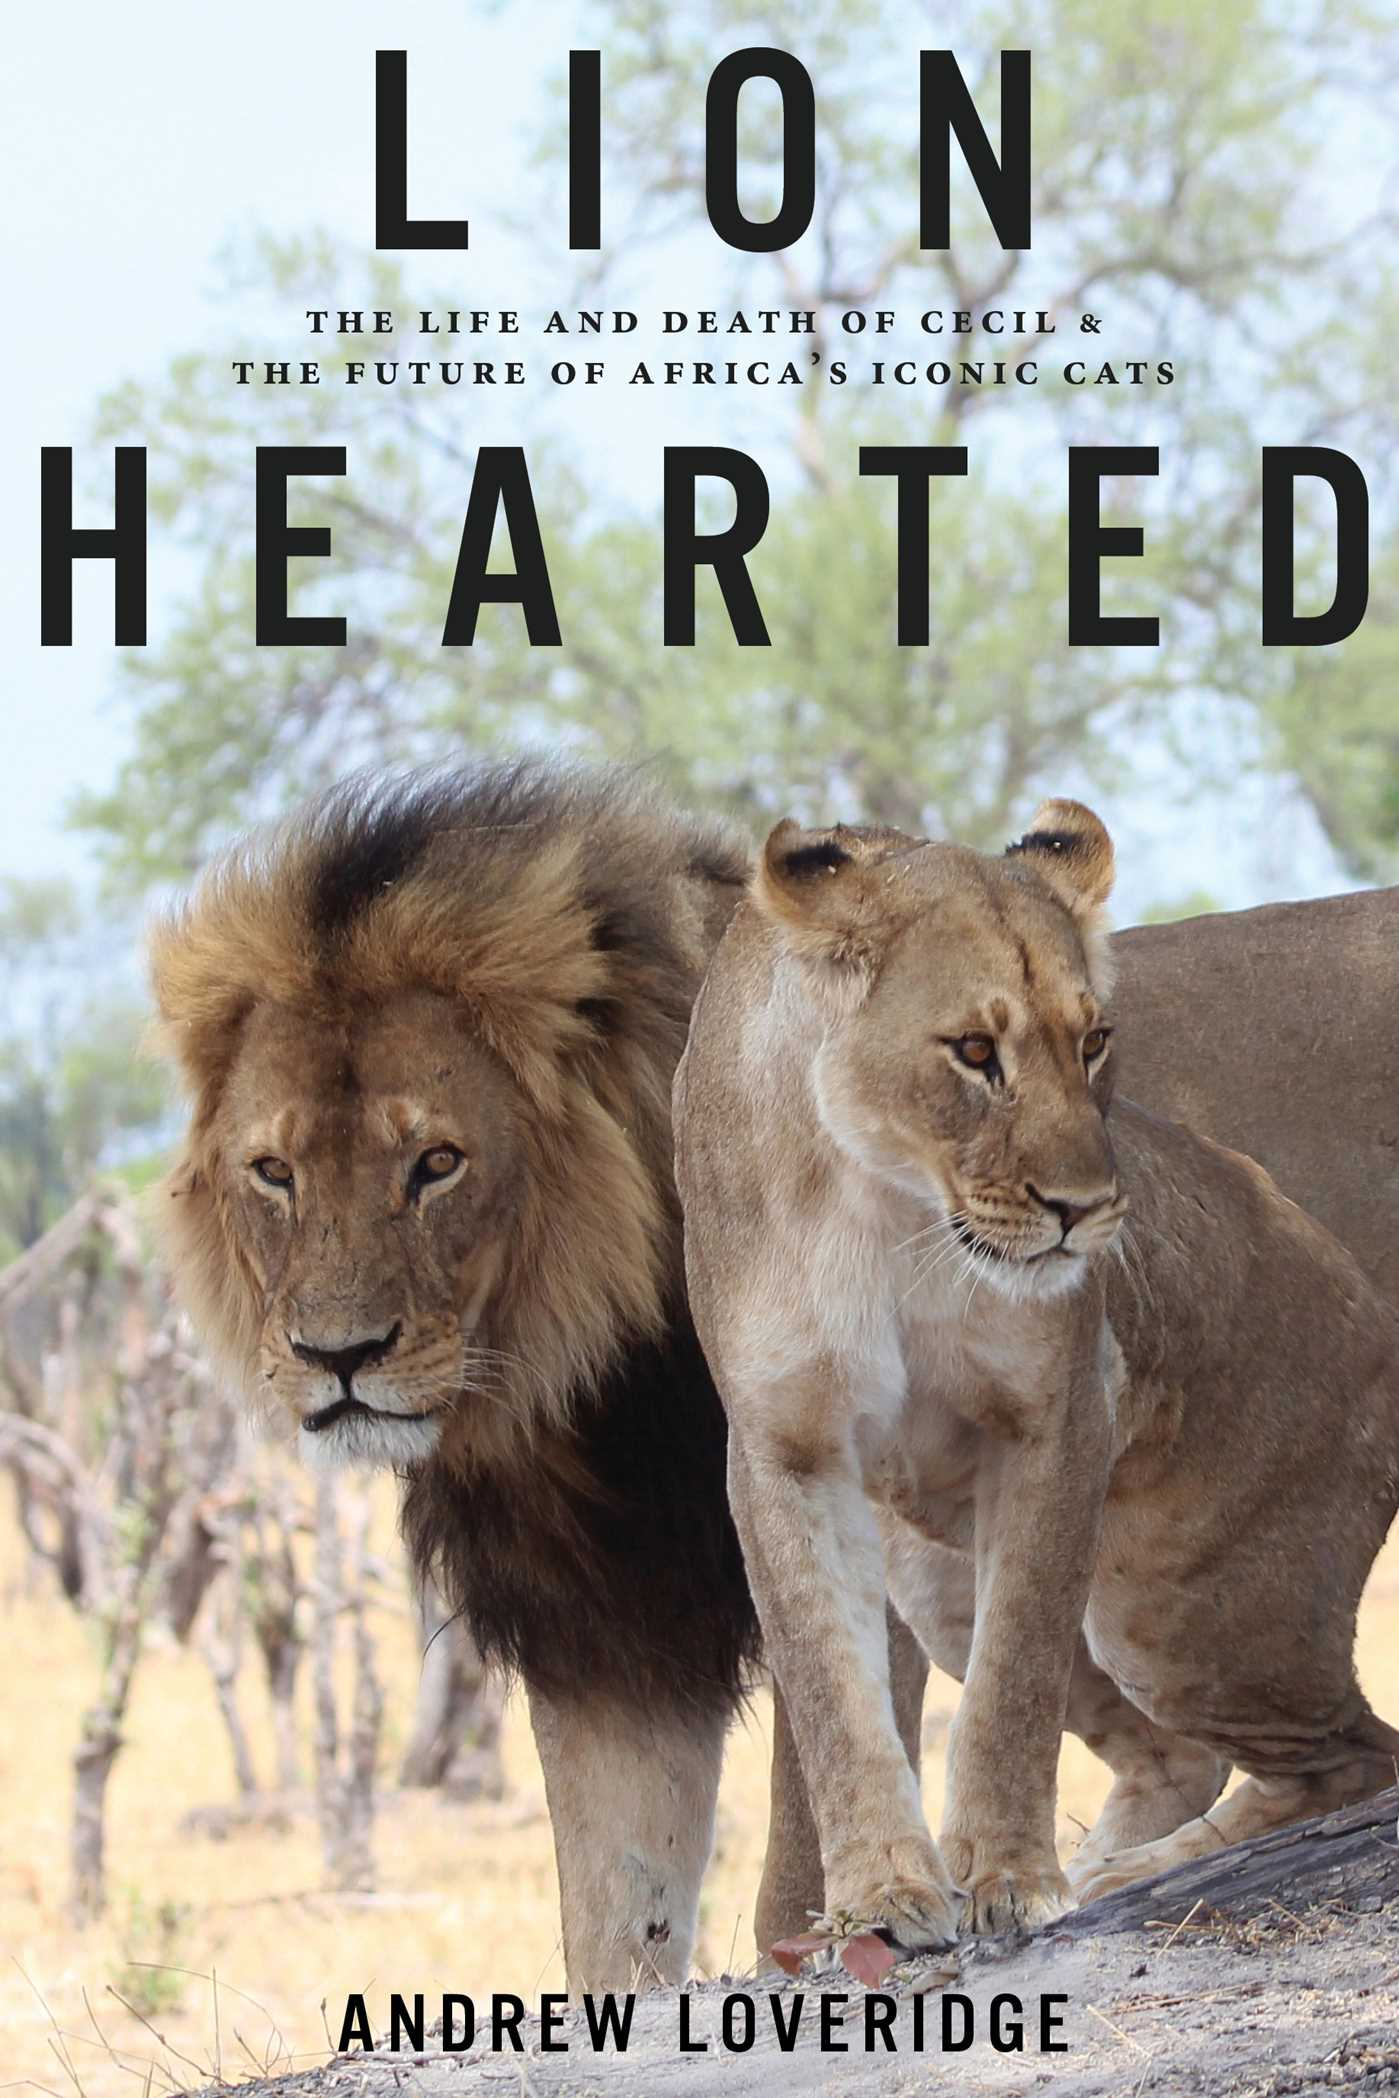 lion hearted book by andrew loveridge official